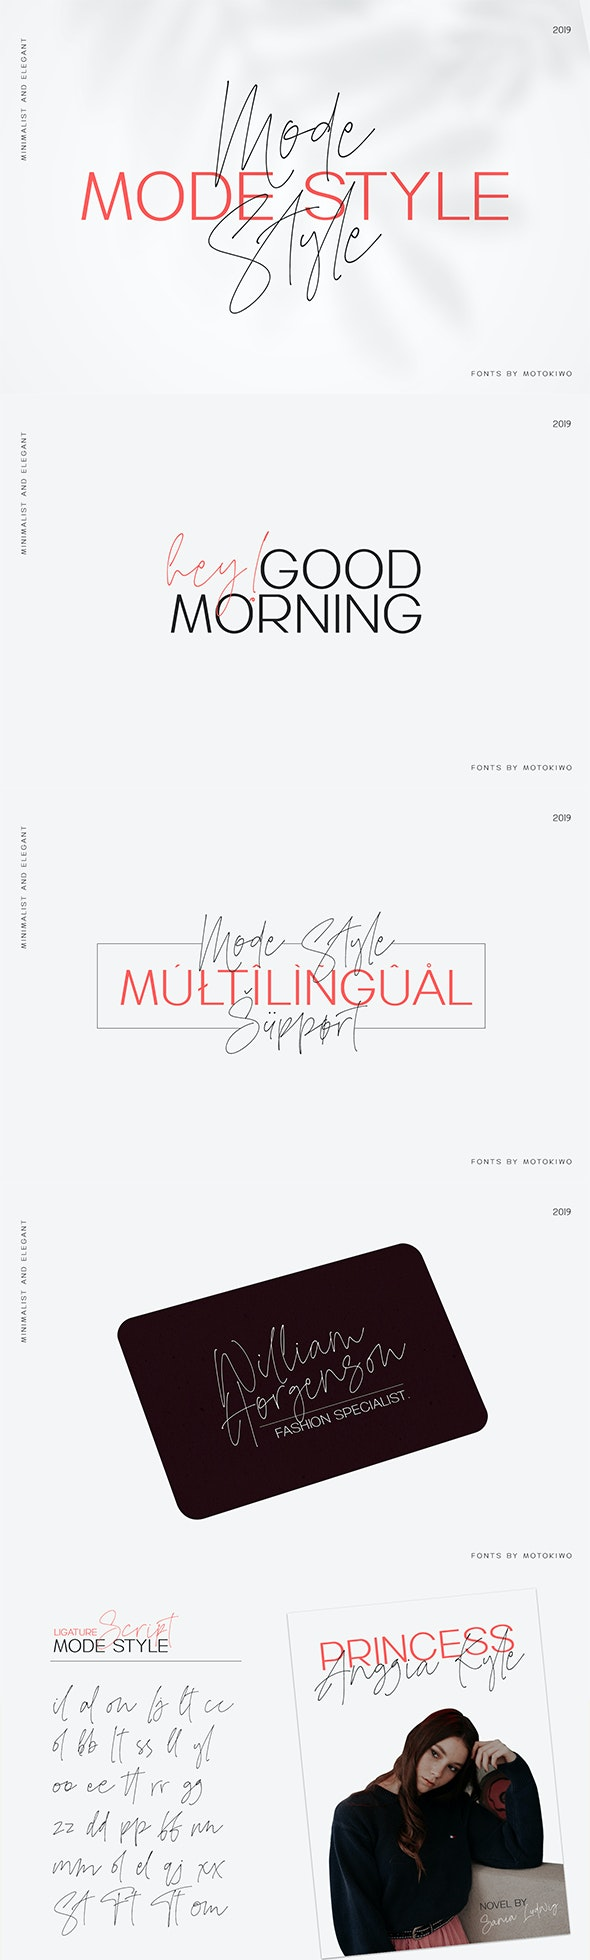 Mode Style Font Duo - Hand-writing Script